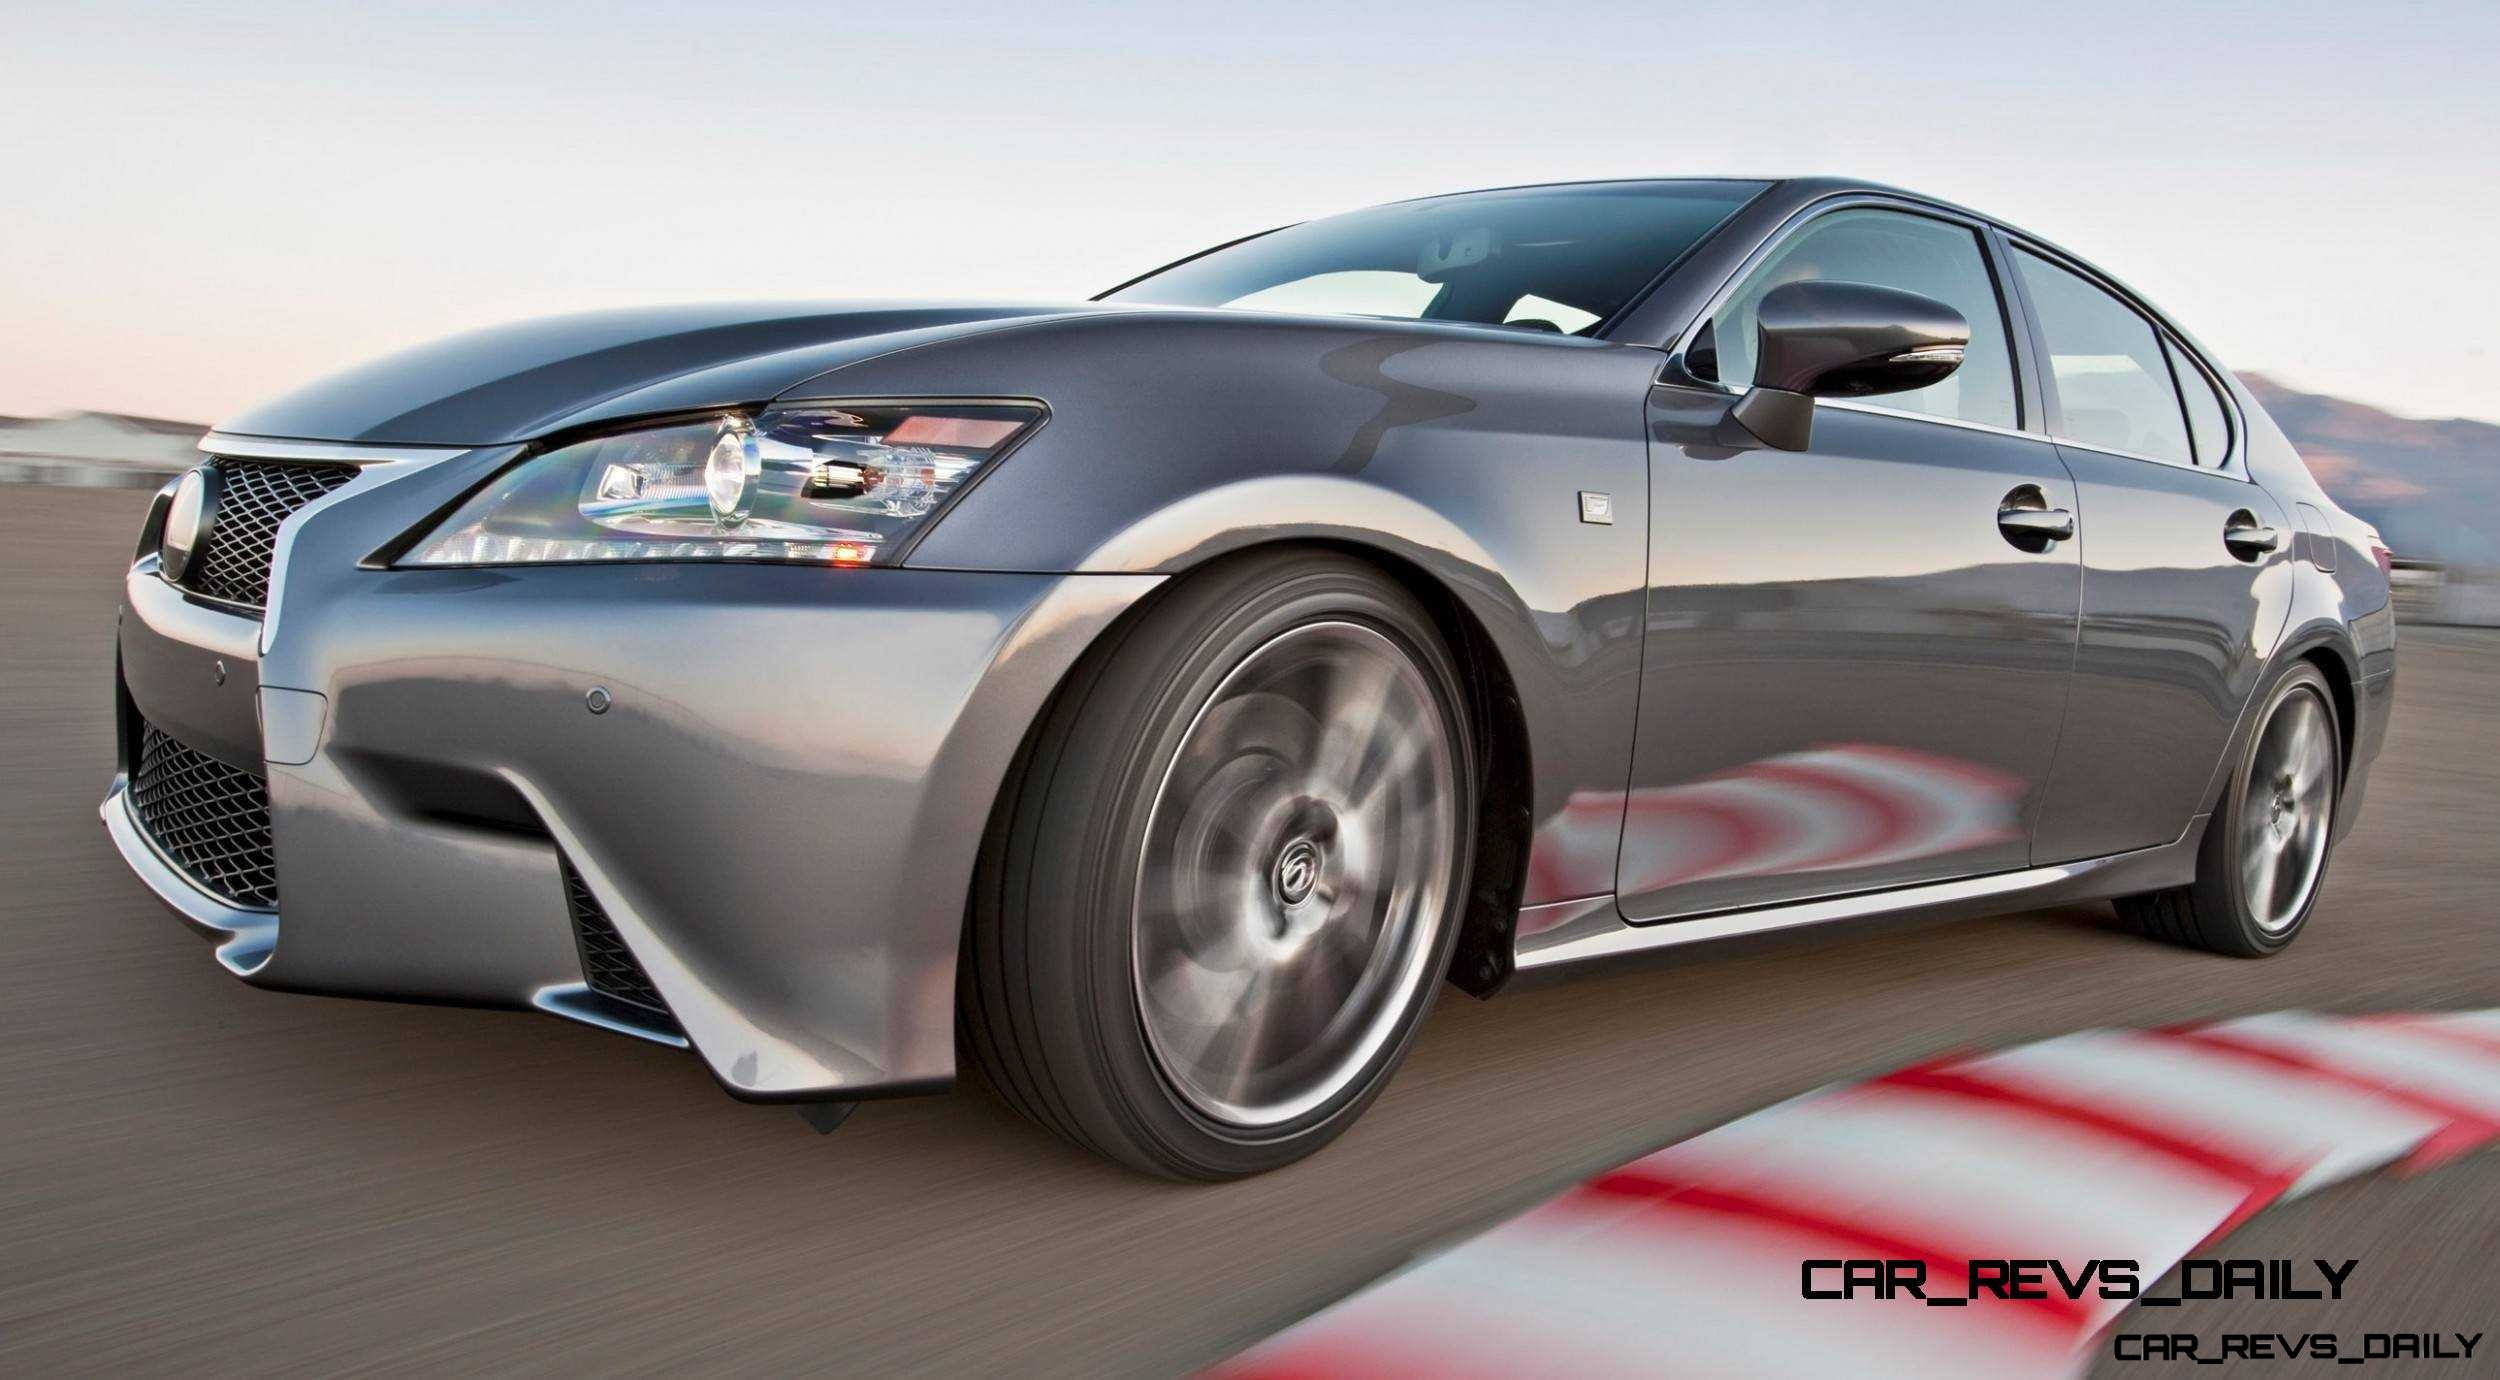 2014 lexus gs350 and gs f sport buyers guide info 16. Black Bedroom Furniture Sets. Home Design Ideas